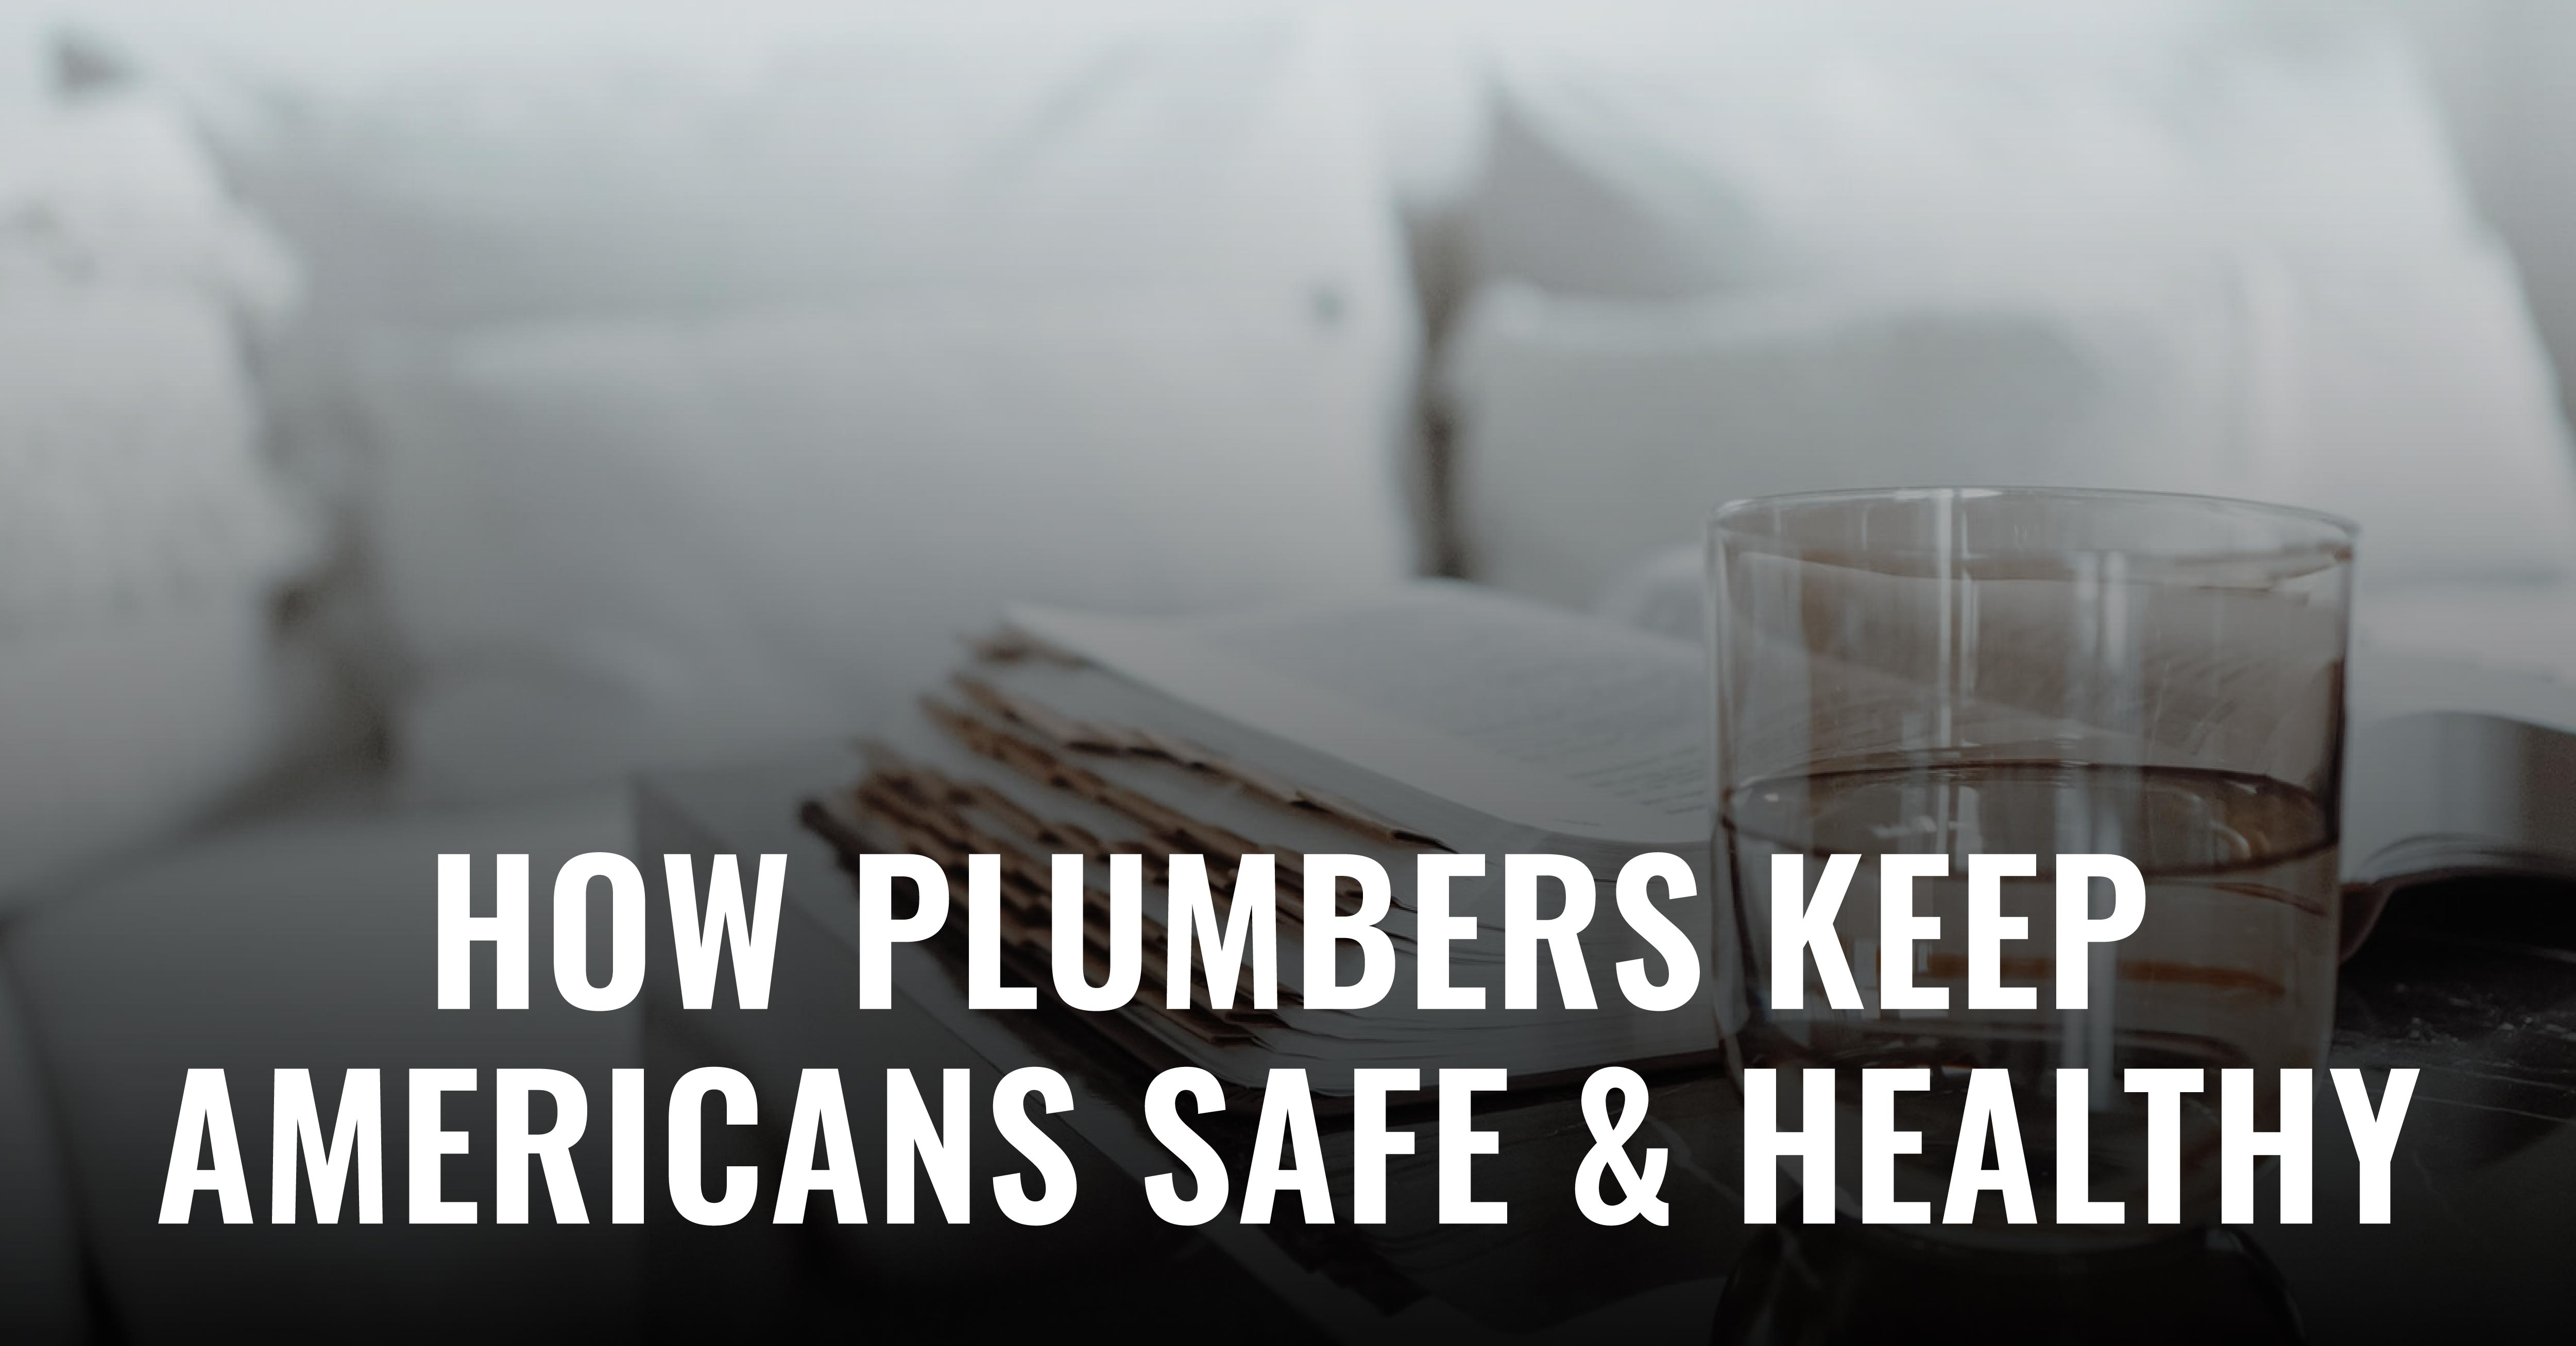 Believe it or not, plumbers are what keep the majority of the US population safe. Read this blog post for a full explanation on why!